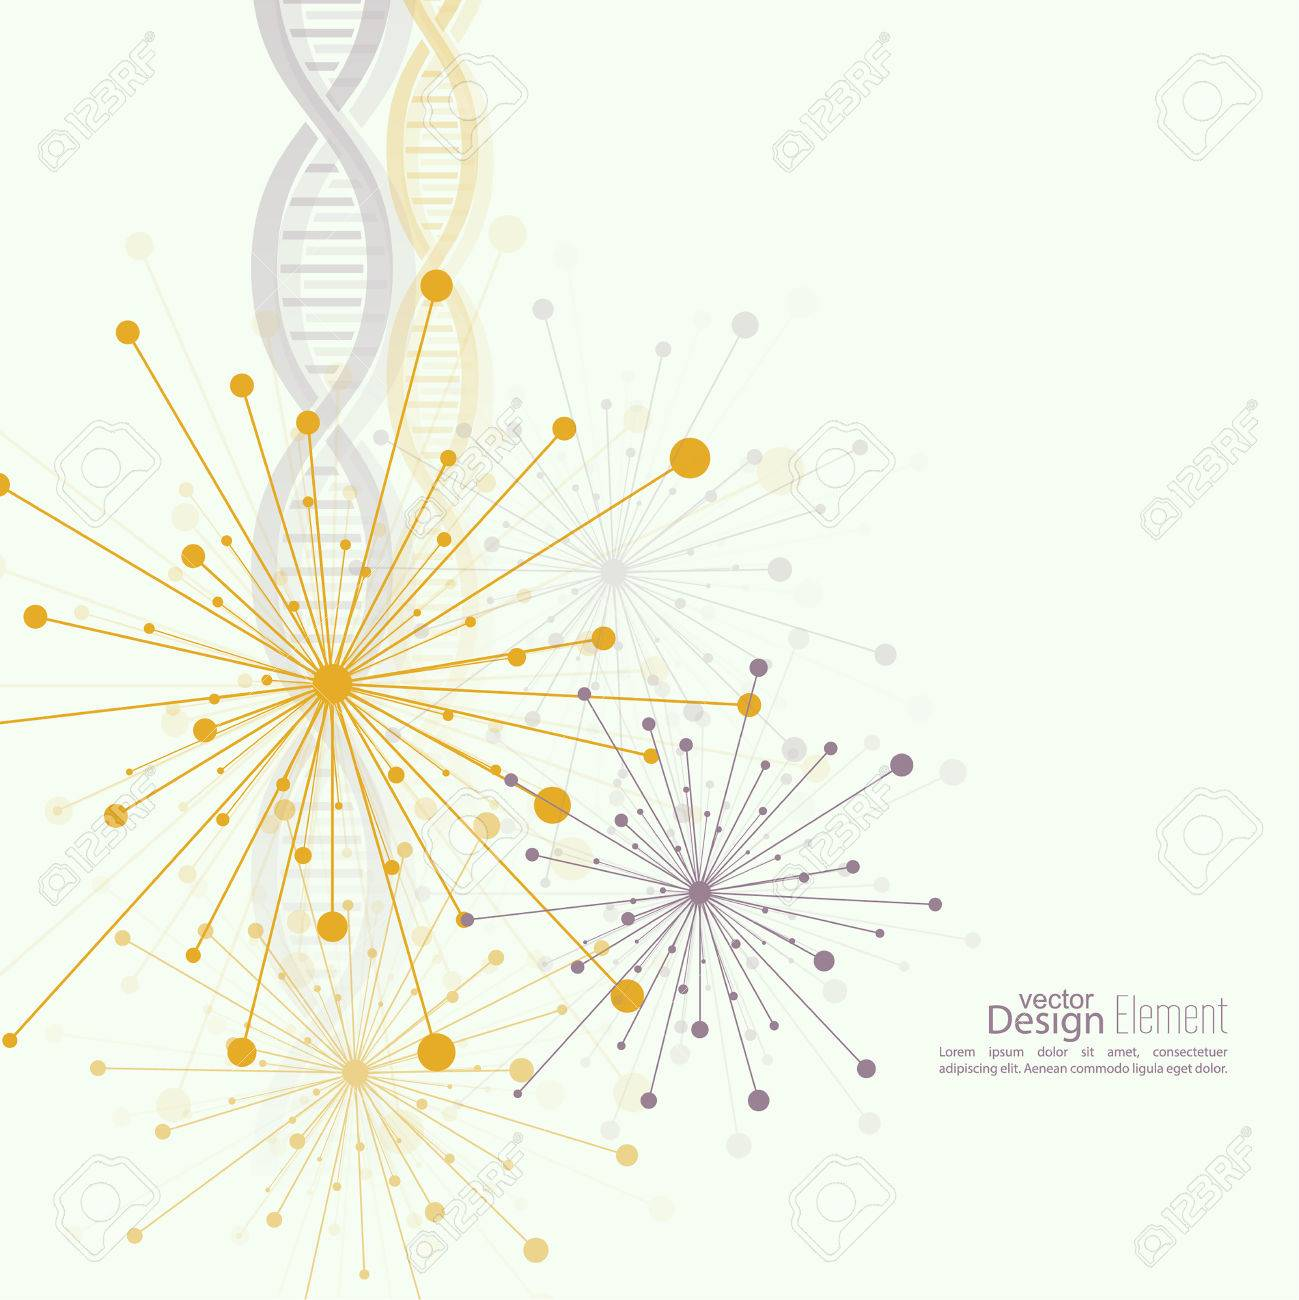 Array with dynamic emitted particles, dot. Node molecule structure. Science and connection concept. Explosion and destruction. Techno Research, brain cells, neurons. DNA strand, helix, spiral - 45513411